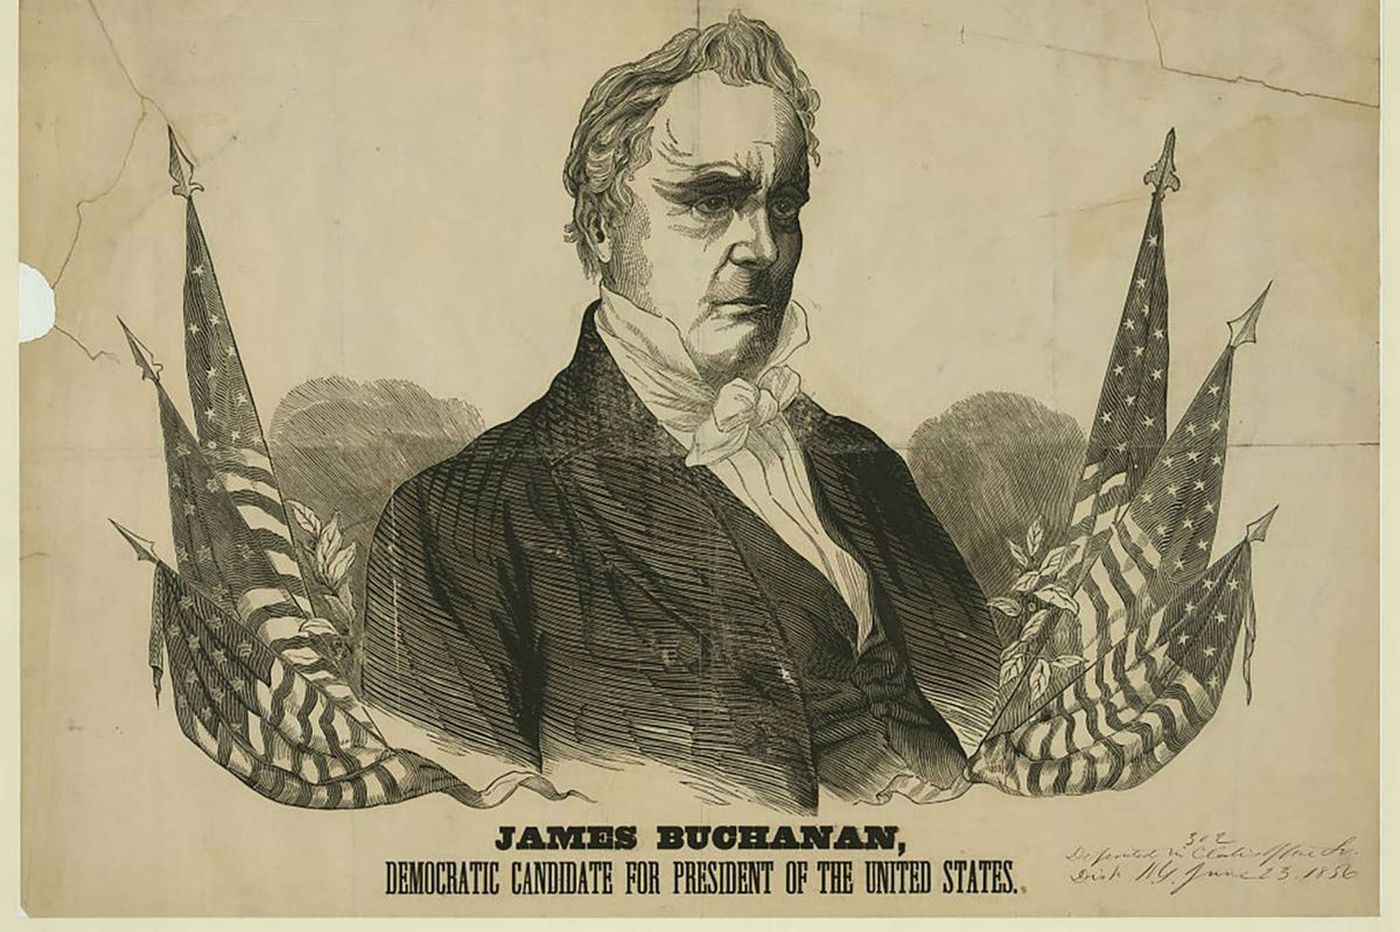 Pa.'s first, worst (and only) president